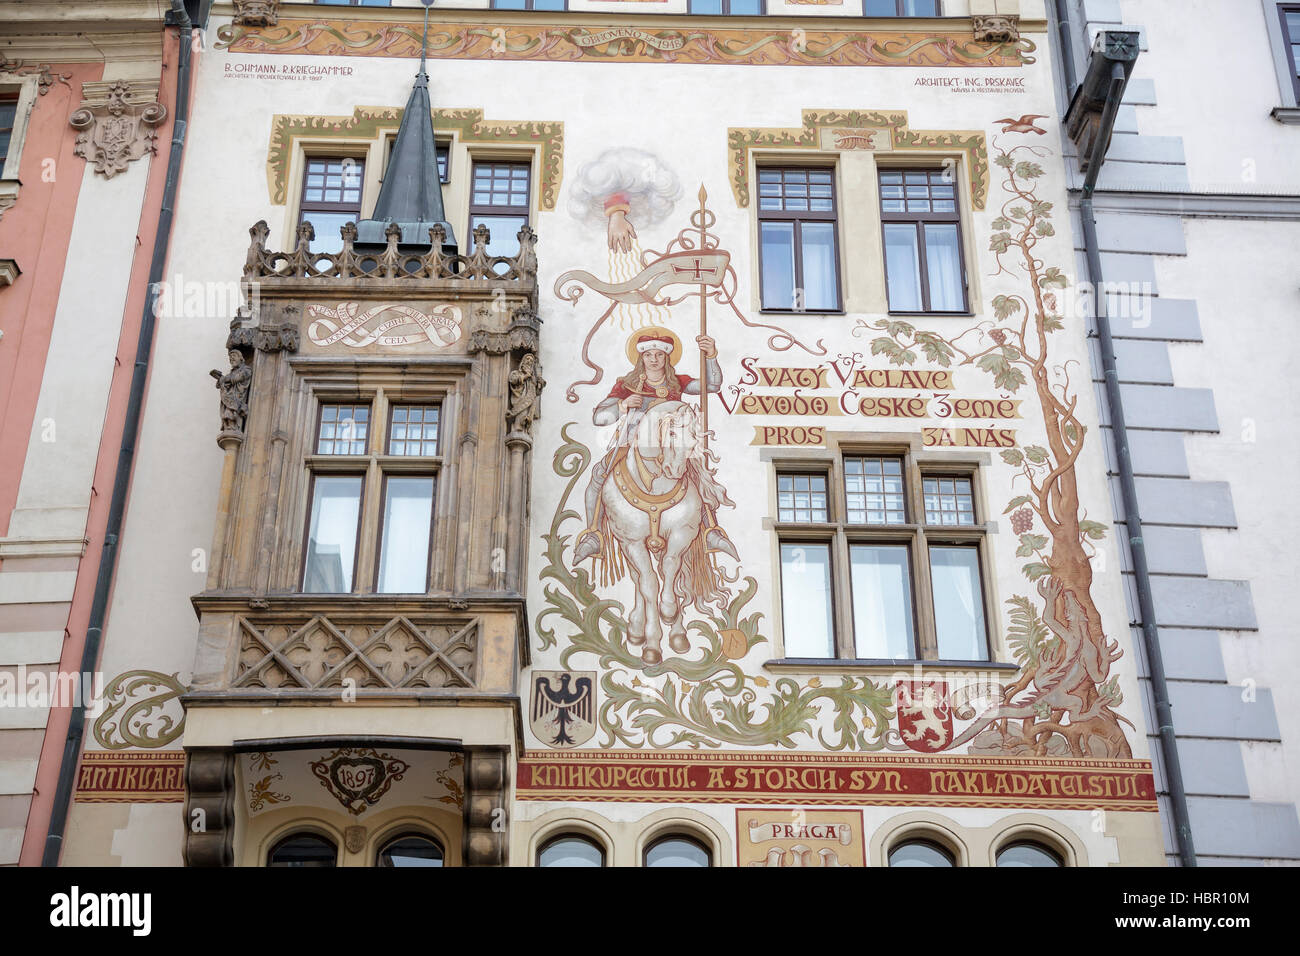 The Storch House on the Old Town Square with a design by Mikulas Ales showing St Wenceslas on horseback, Prague, - Stock Image